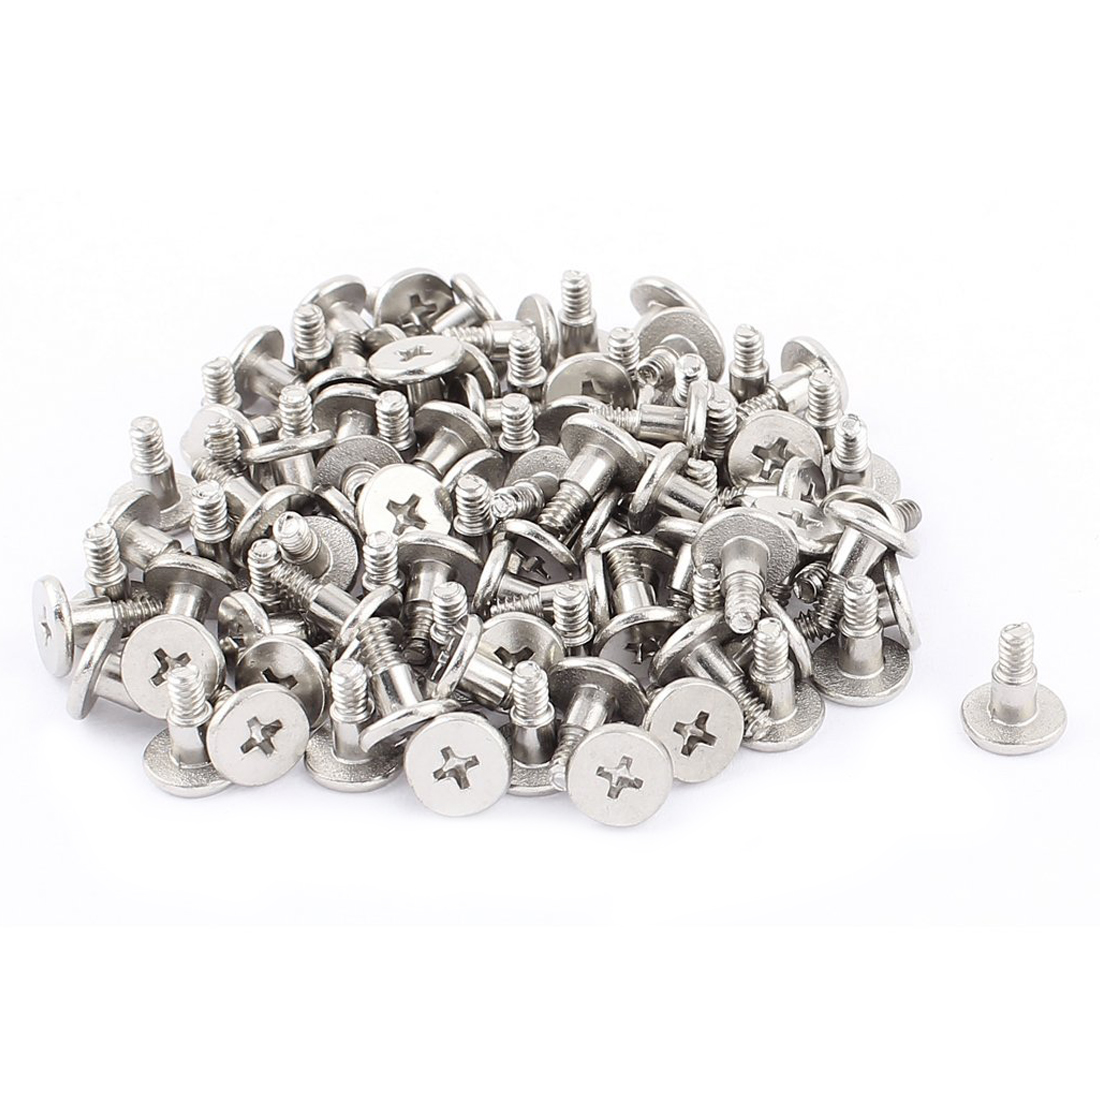 PC Computer Case HDD Phillips Flat Head Bolts Hard Drive Screws 100pcs pc computer case hdd phillips flat head bolts hard drive screws 100pcs